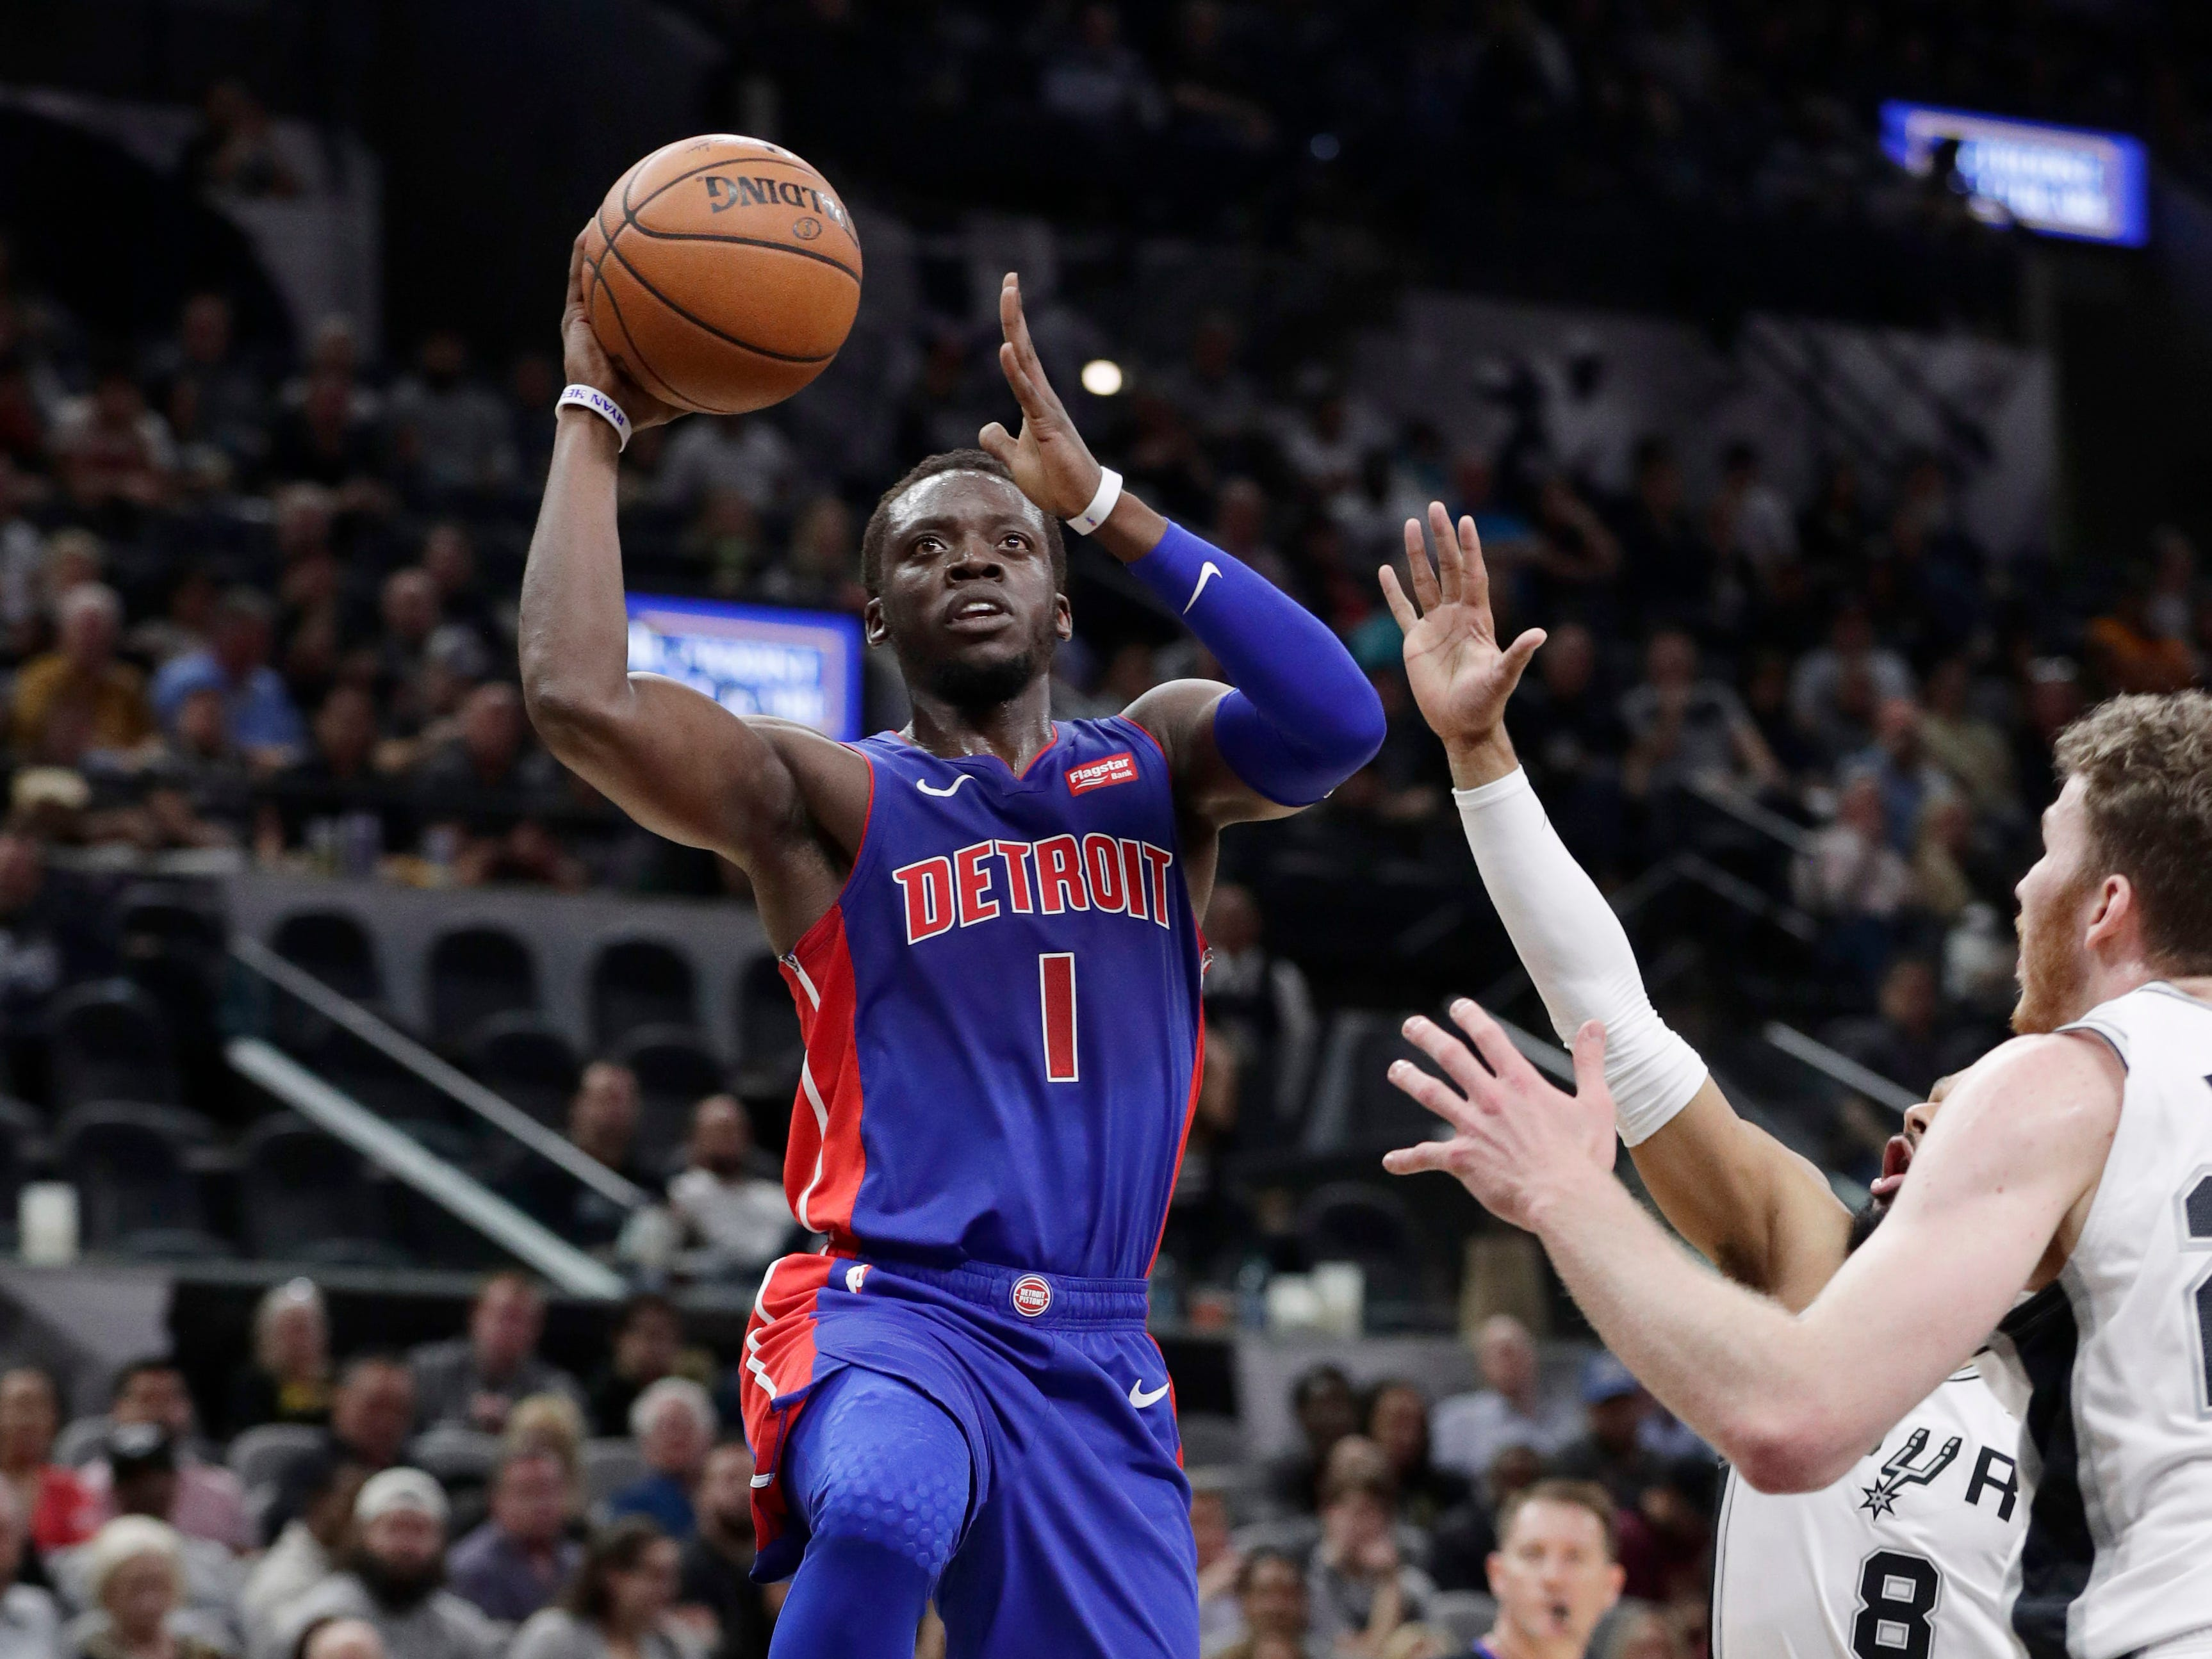 Detroit Pistons guard Reggie Jackson (1) drives to the basket against the San Antonio Spurs during the first half.